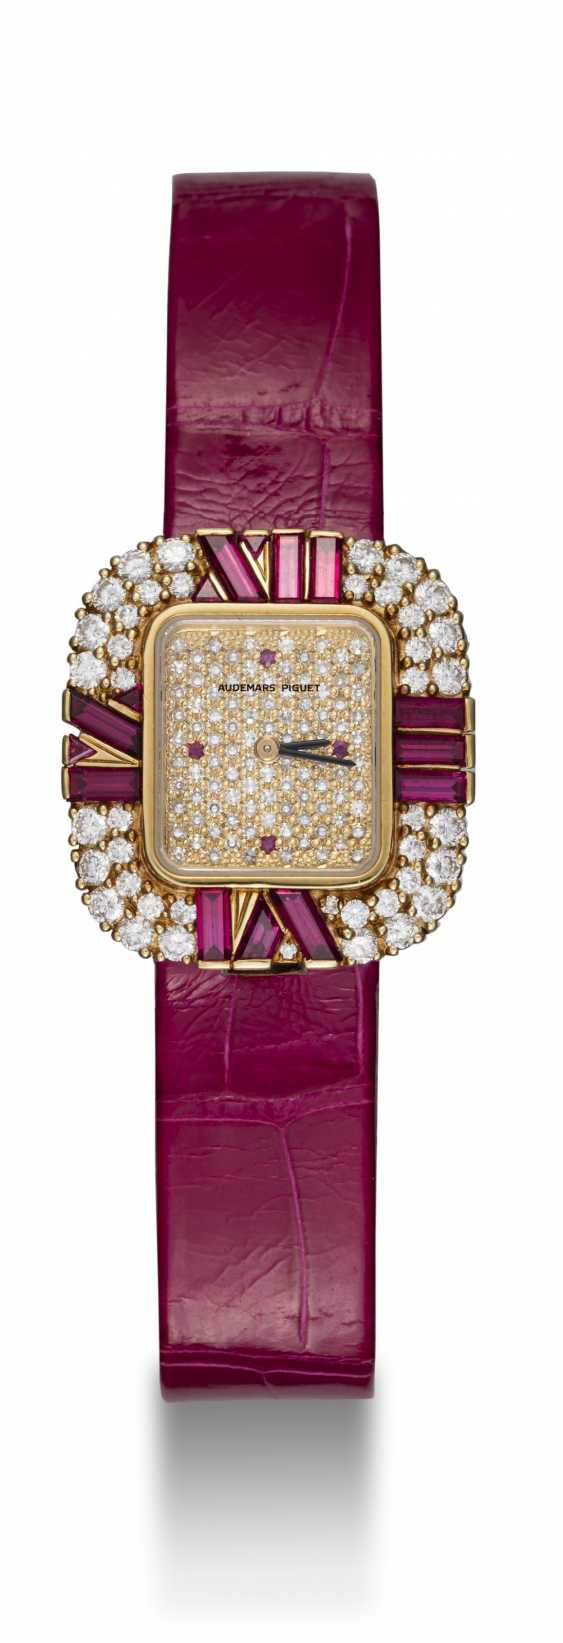 AUDEMARS PIGUET, A LADIES YELLOW GOLD WRISTWATCH SET WITH DIAMONDS AND RUBIES AND A PAVED DIAL - photo 3